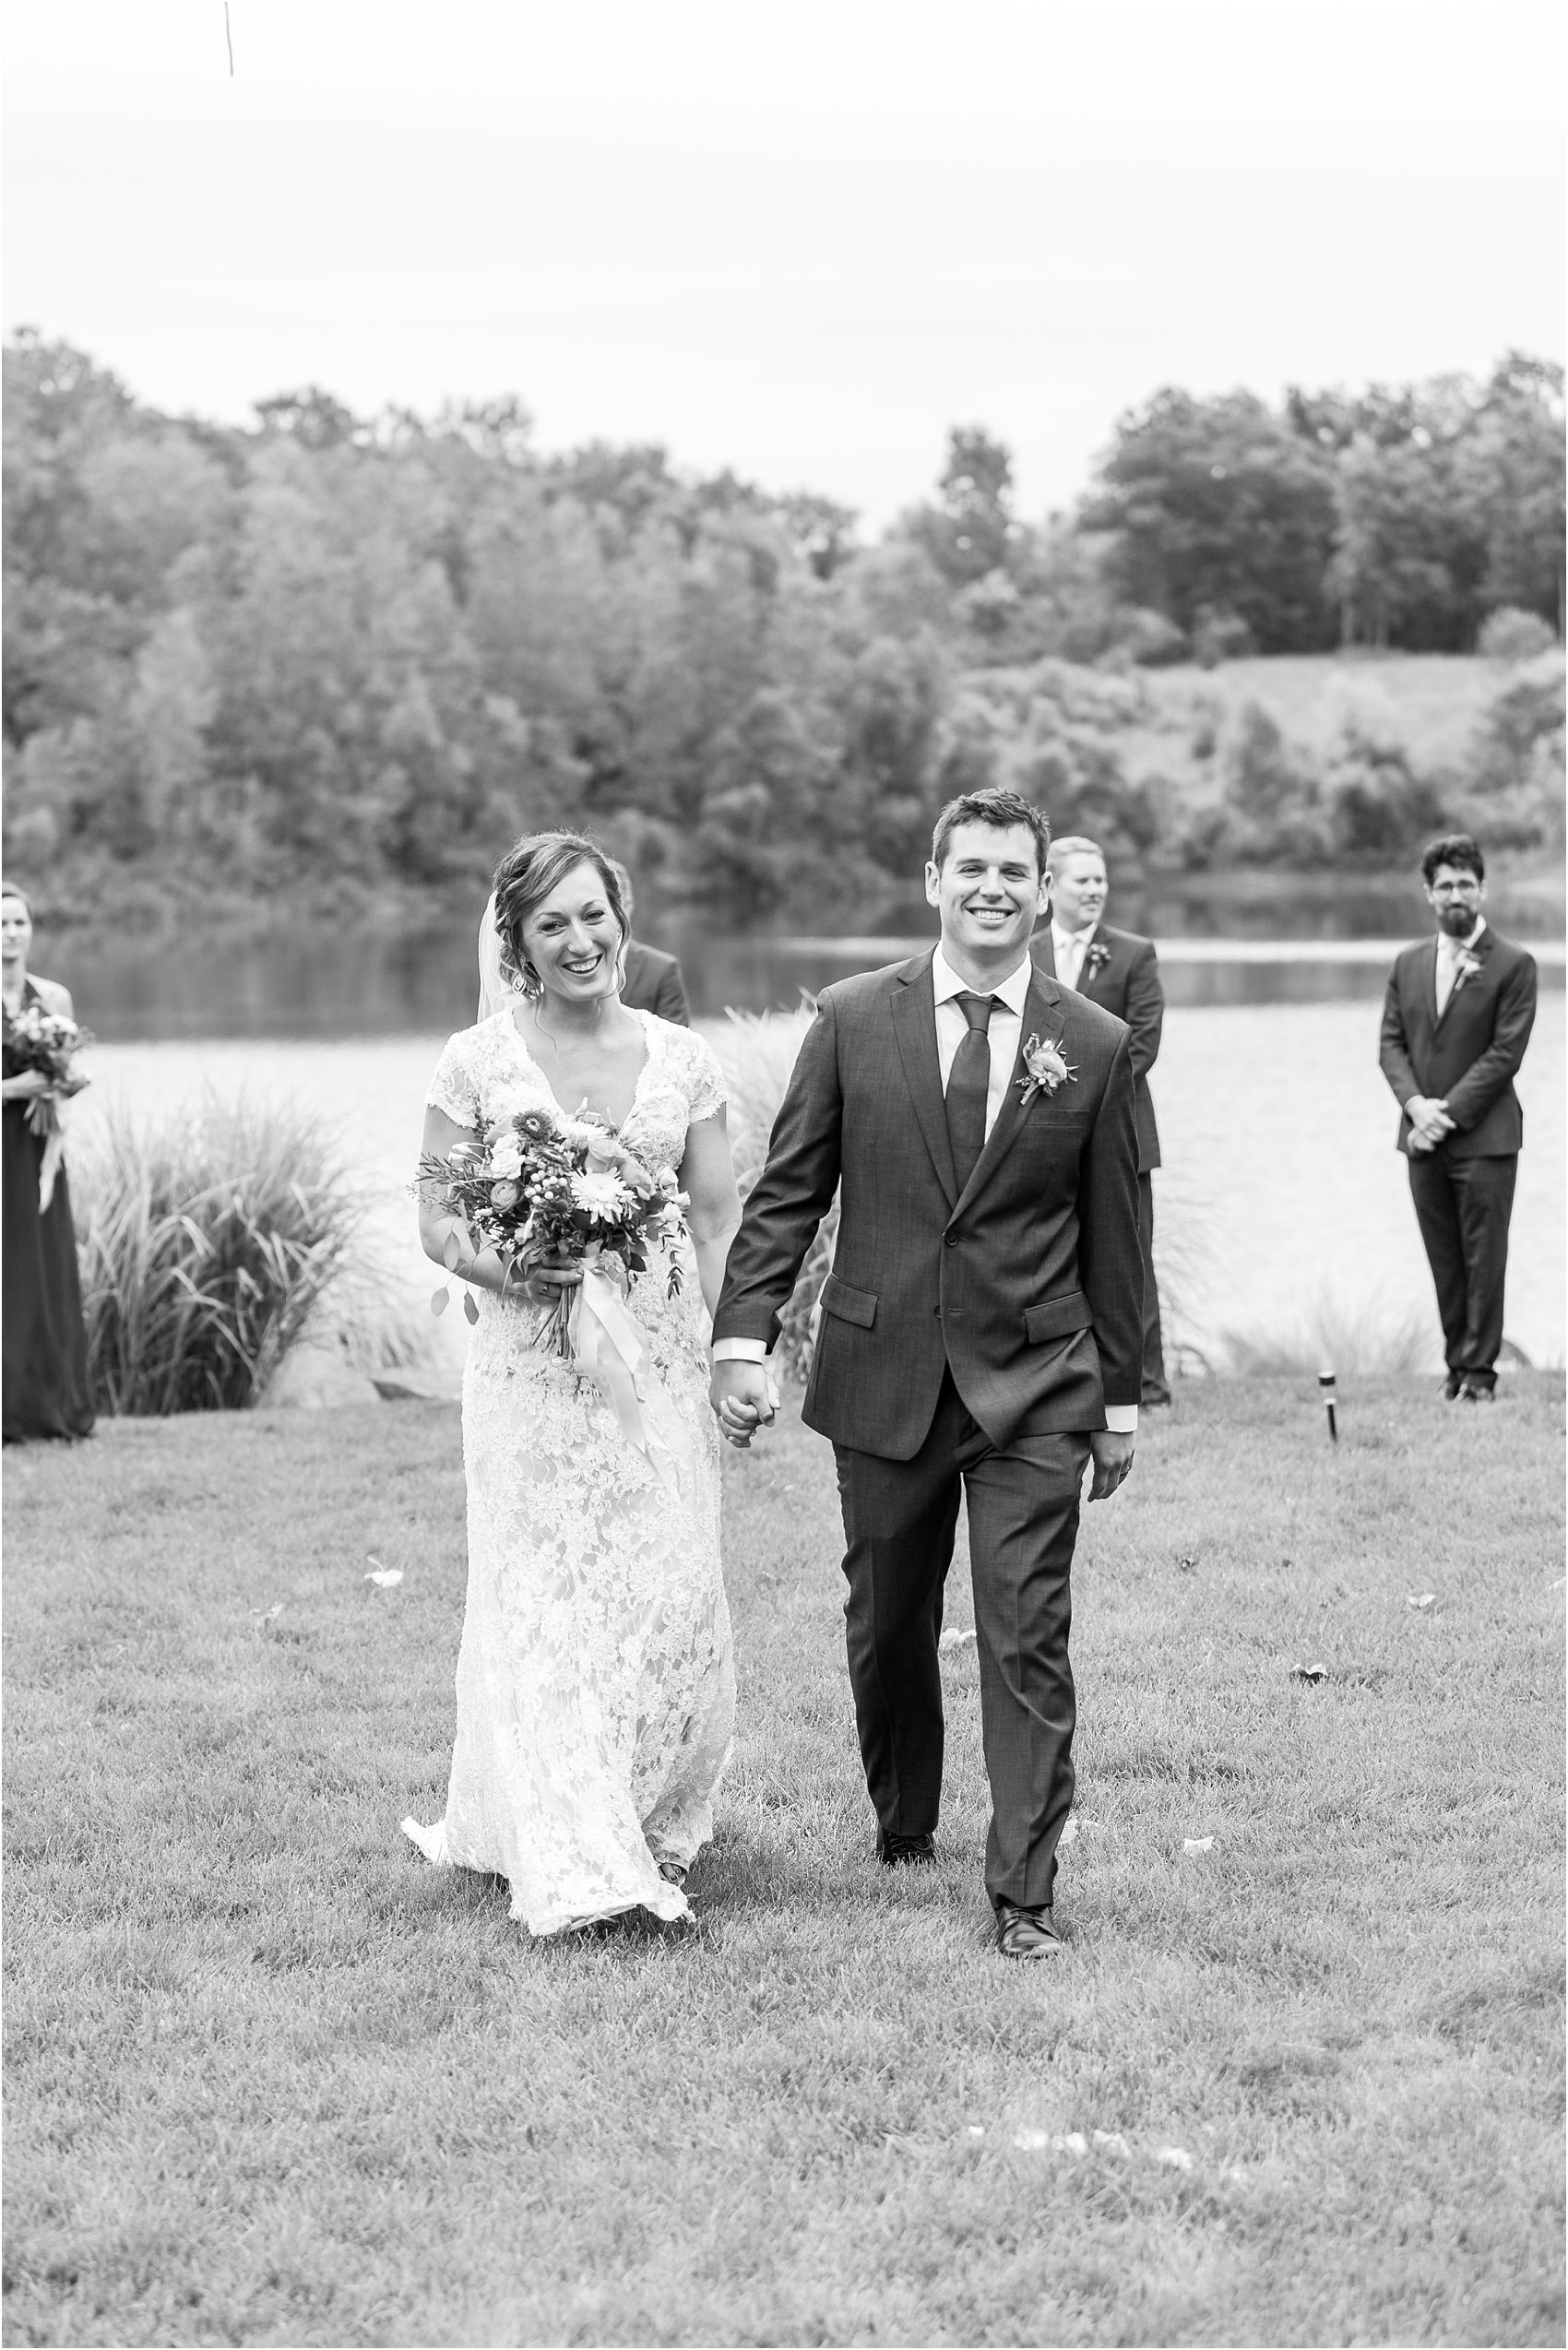 romantic-intimate-backyard-wedding-photos-at-private-estate-in-ann-arbor-mi-by-courtney-carolyn-photography_0110.jpg